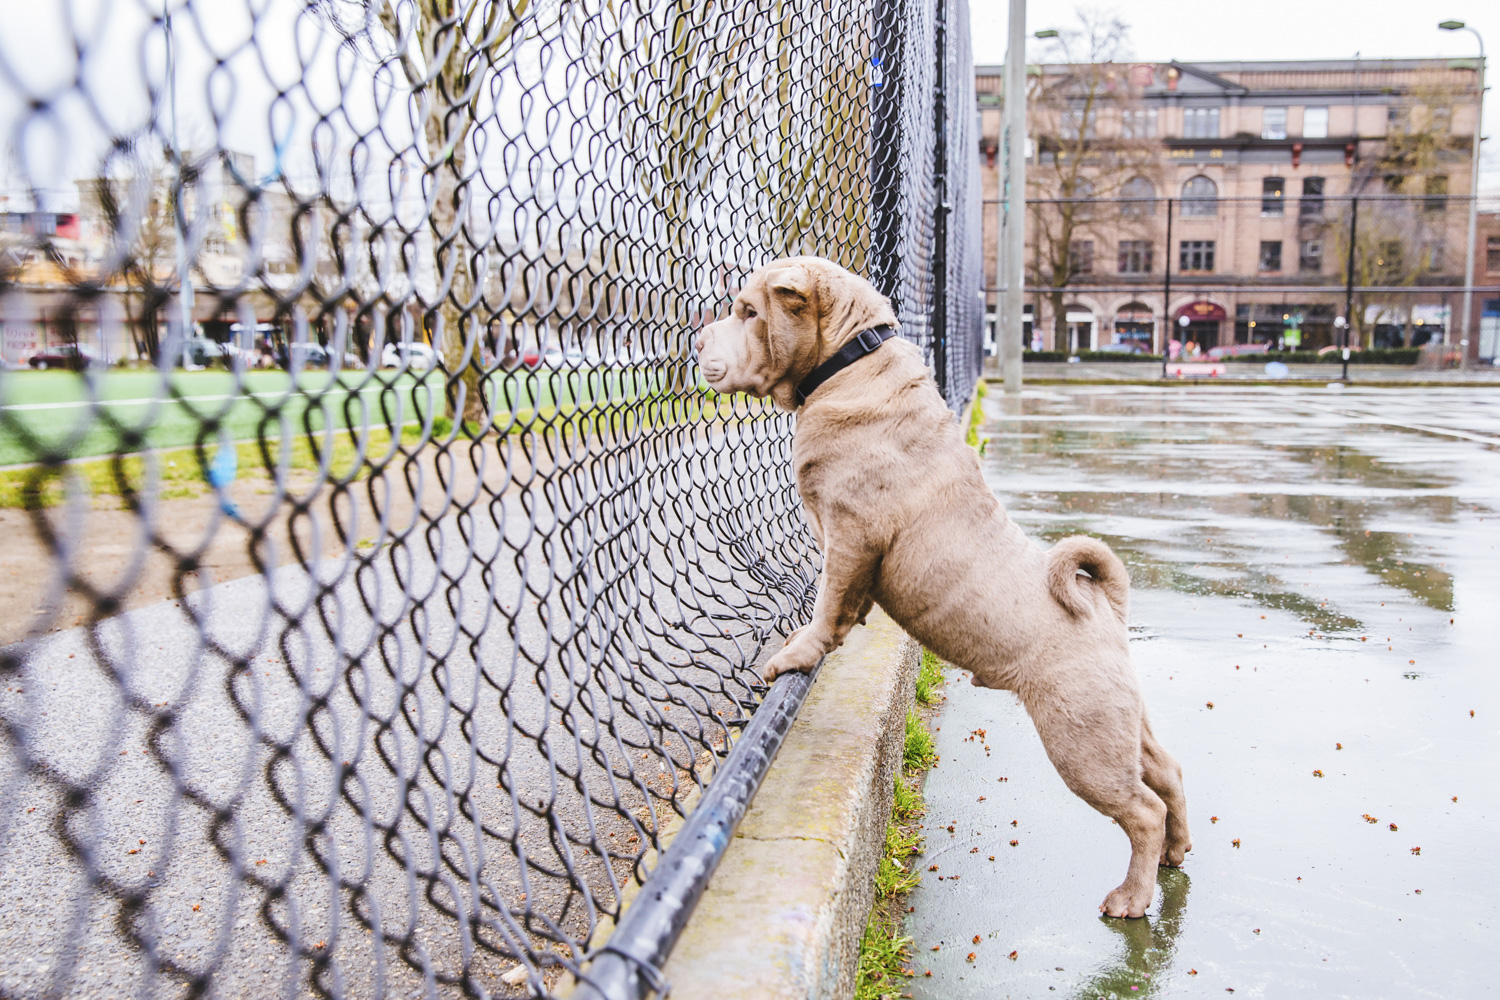 LOOK AT THIS WRINKLE BUTT! Filson is a seven-month-old Shar Pei and is a PNW native and is named after Seattle's very own Filson. Filson enjoys napping throughout the day and will occasionally wake up to chase little dusts falling from a near shelf. He is the loudest snorer in the house and will event sometimes wake up his own self. Filson likes to hang out at Magnuson park on the weekends and play tag with all his friends. Filson likes running through the tall grass, napping and playing with Great Danes. He dislikes baths, obedience class and walking on metal grates. You can follow Filson's journey through life on instagram @filson.yosen.{ }The Seattle RUFFined Spotlight is a weekly profile of local pets living and loving life in the PNW. If you or someone you know has a pet you'd like featured, email us at hello@seattlerefined.com or tag #SeattleRUFFined and your furbaby could be the next spotlighted! (Image: Sunita Martini / Seattle Refined).